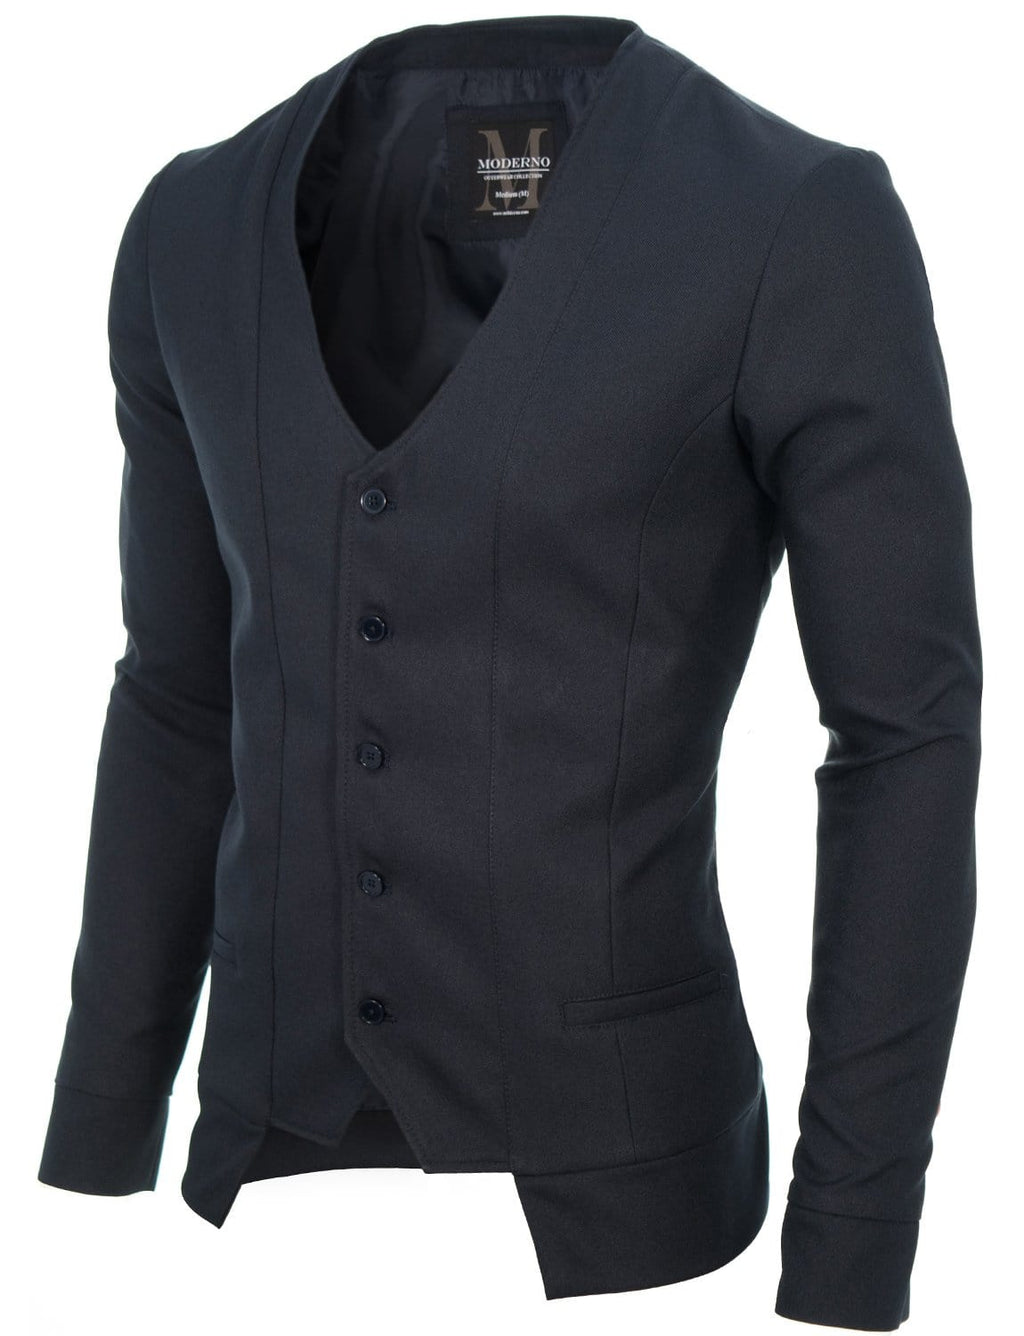 Mens slim fit long sleeve vest cardigan navy (MOD16130V)